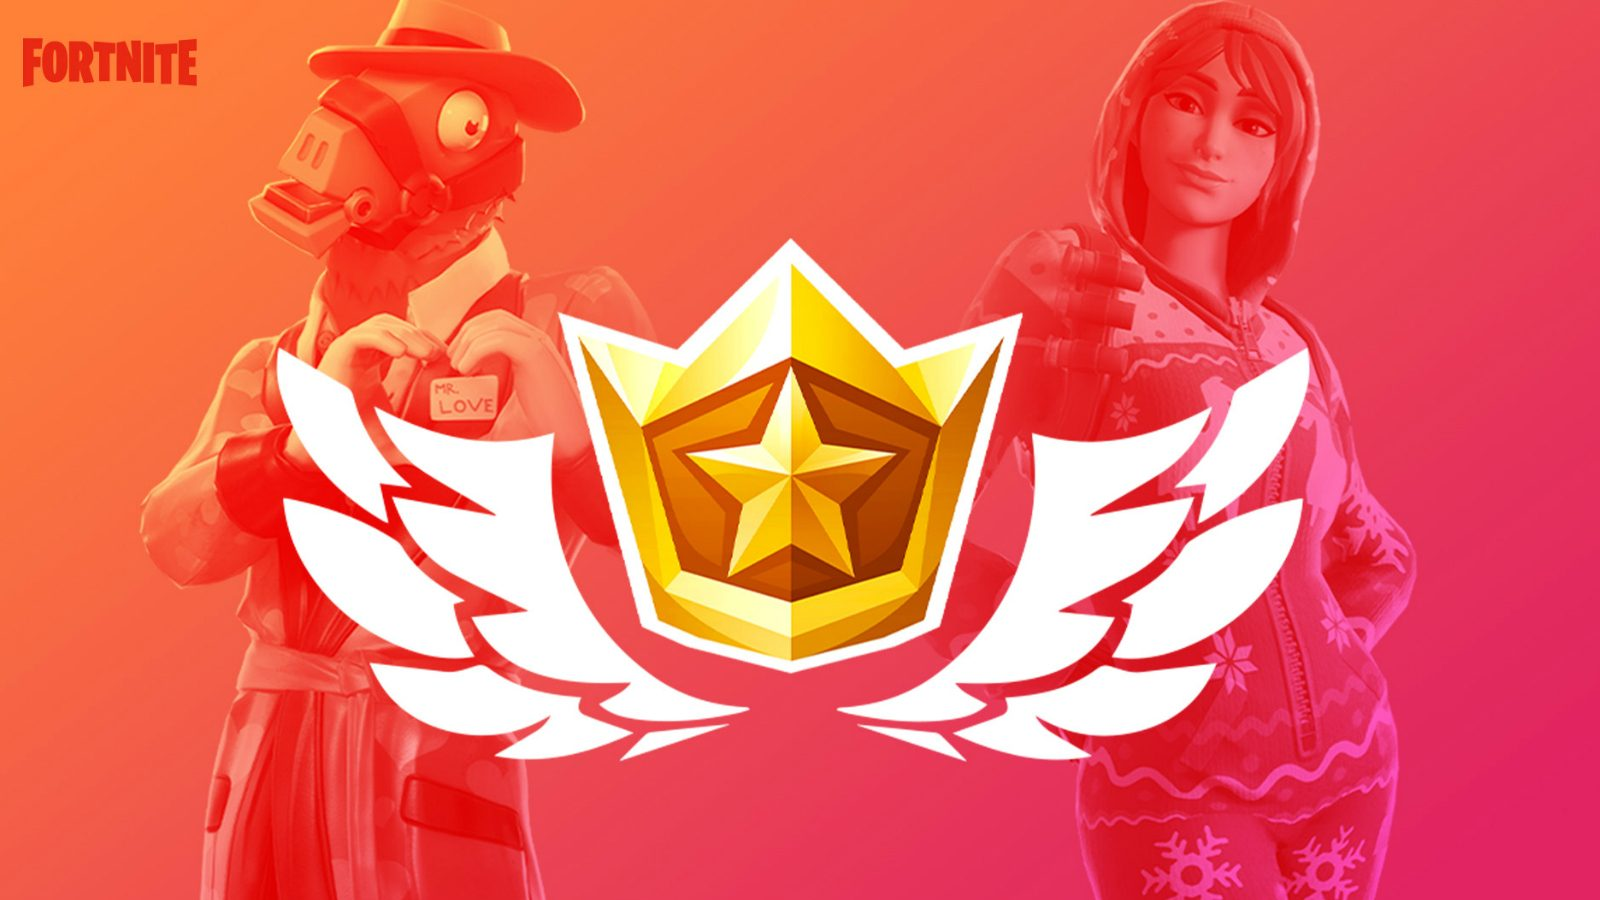 Fortnite Battle Pass 8 For Free Expansive